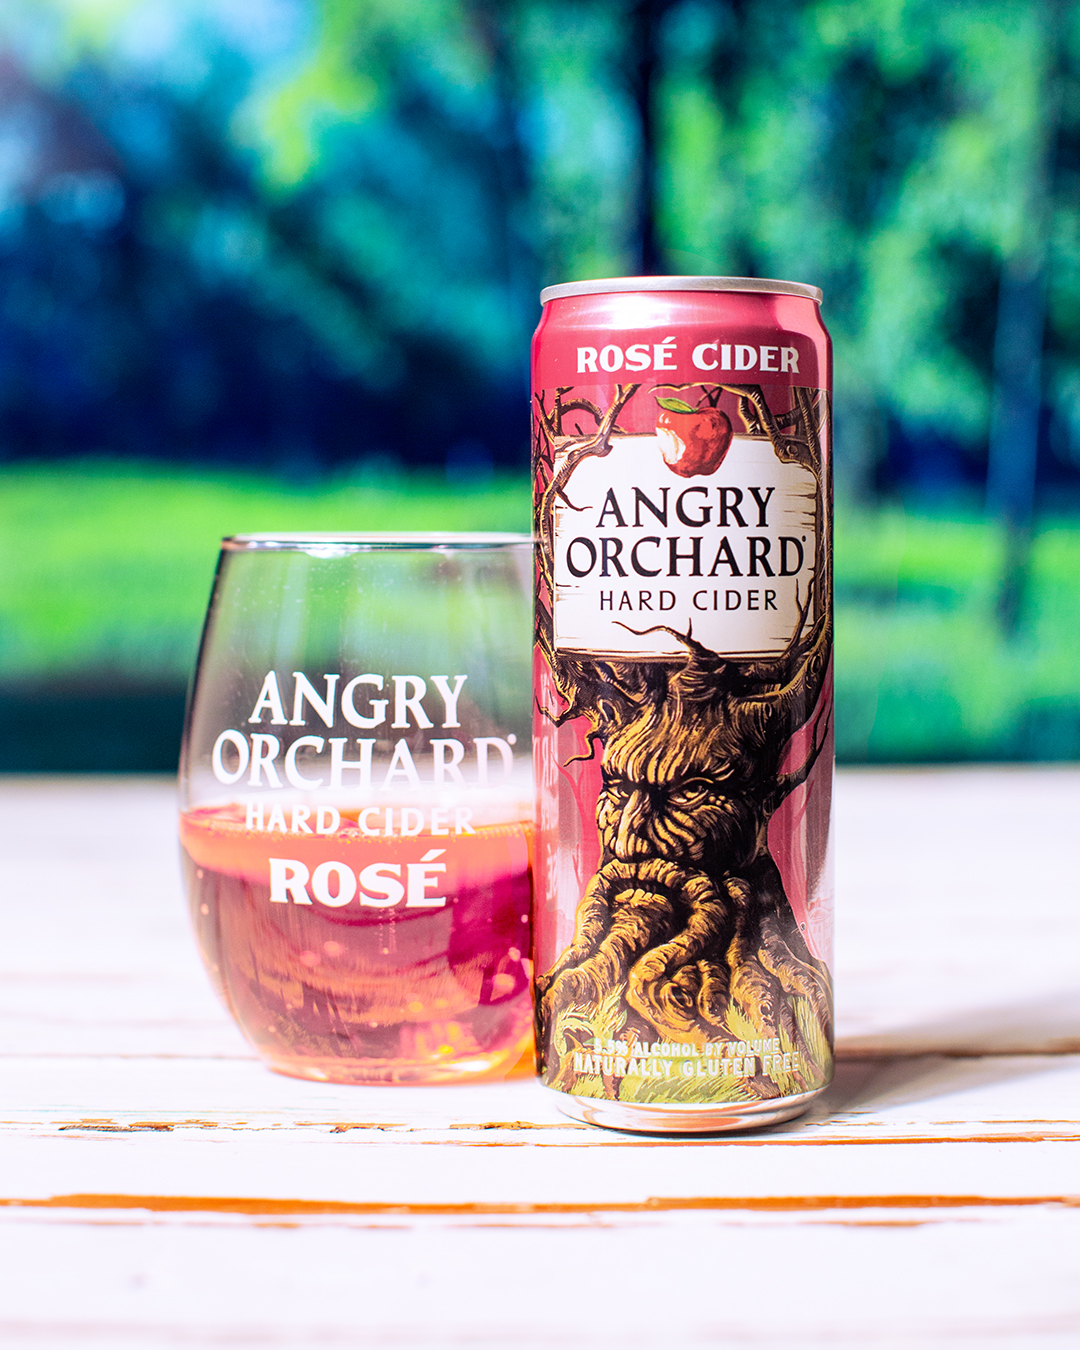 Angry Orchard Rosé is in the rare red-fleshed apples that are used as part of the blend, called Amour Rouge